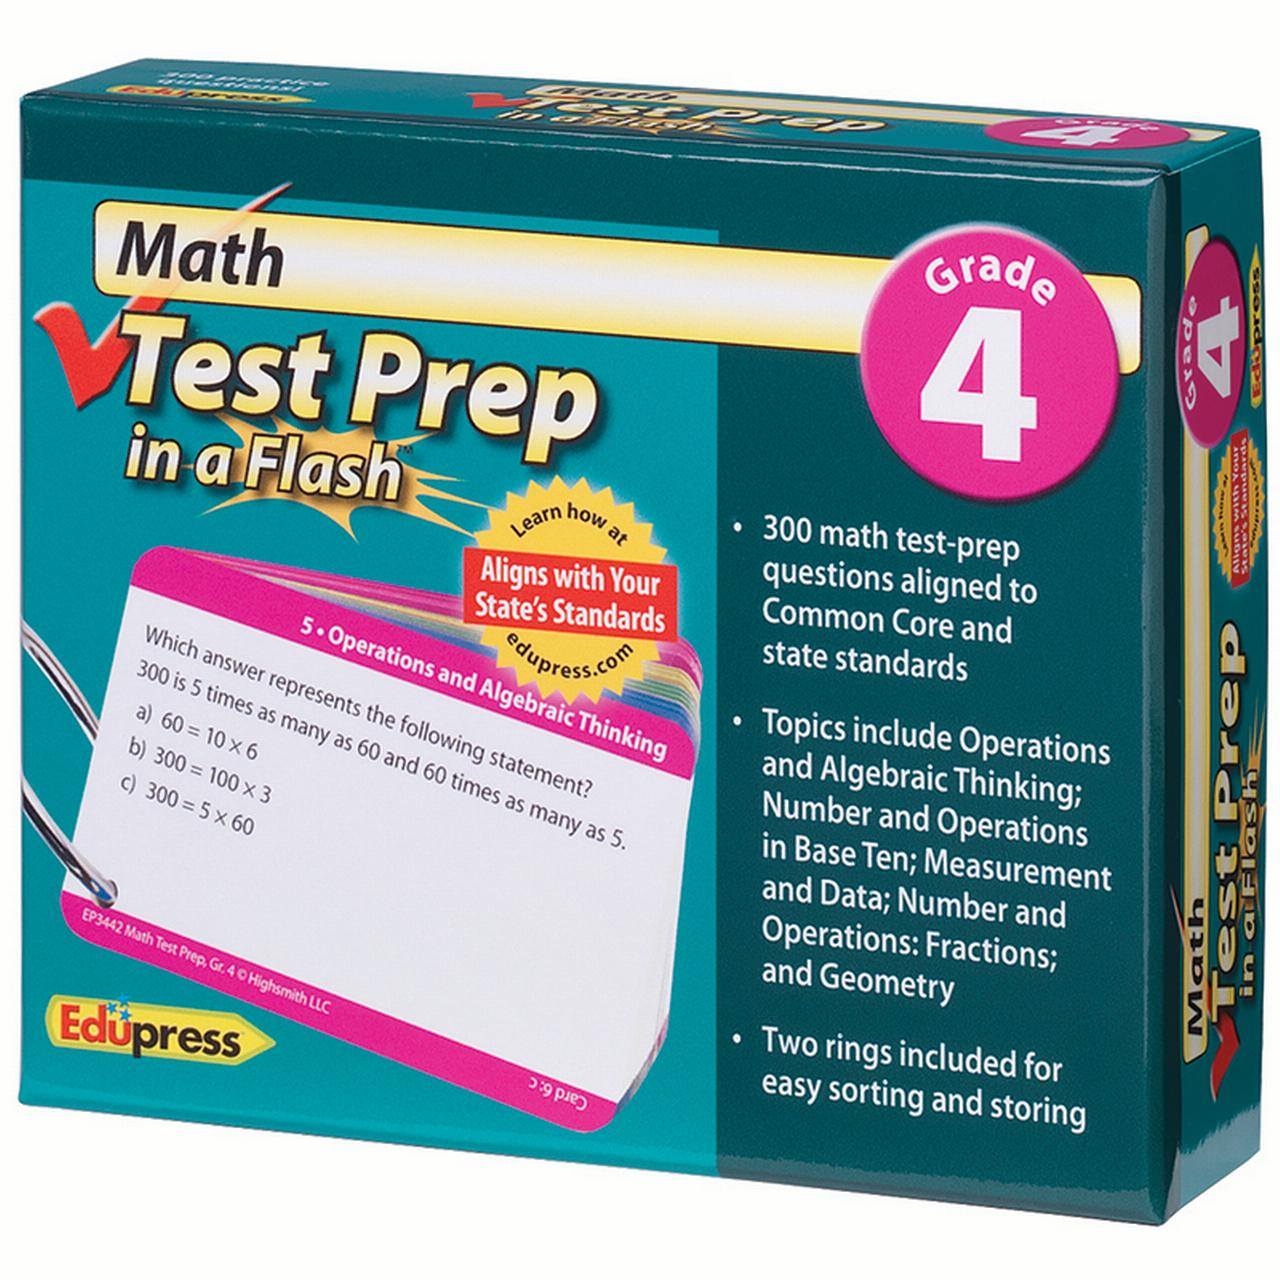 MATH TEST PREP IN A FLASH GR 4